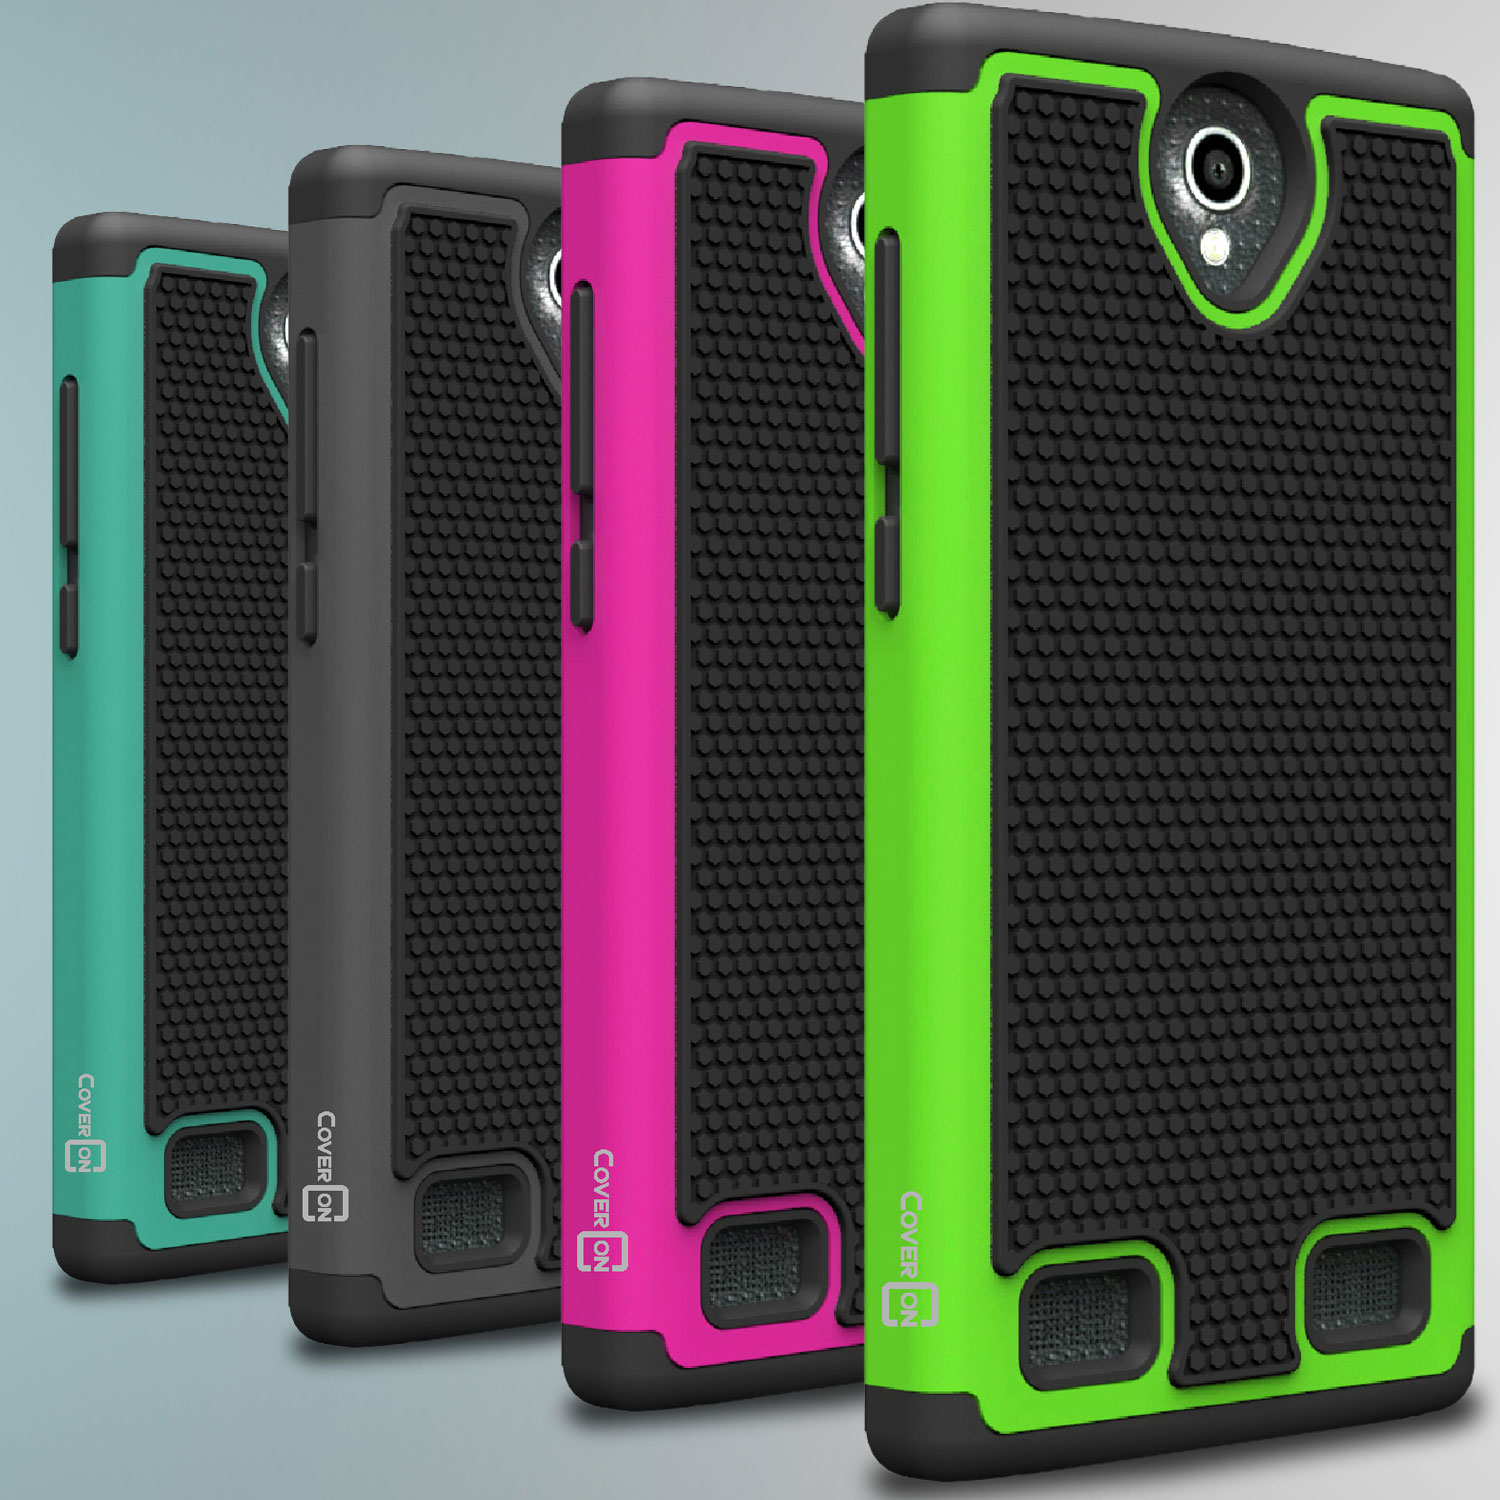 The zte phone cases otterbox one point was